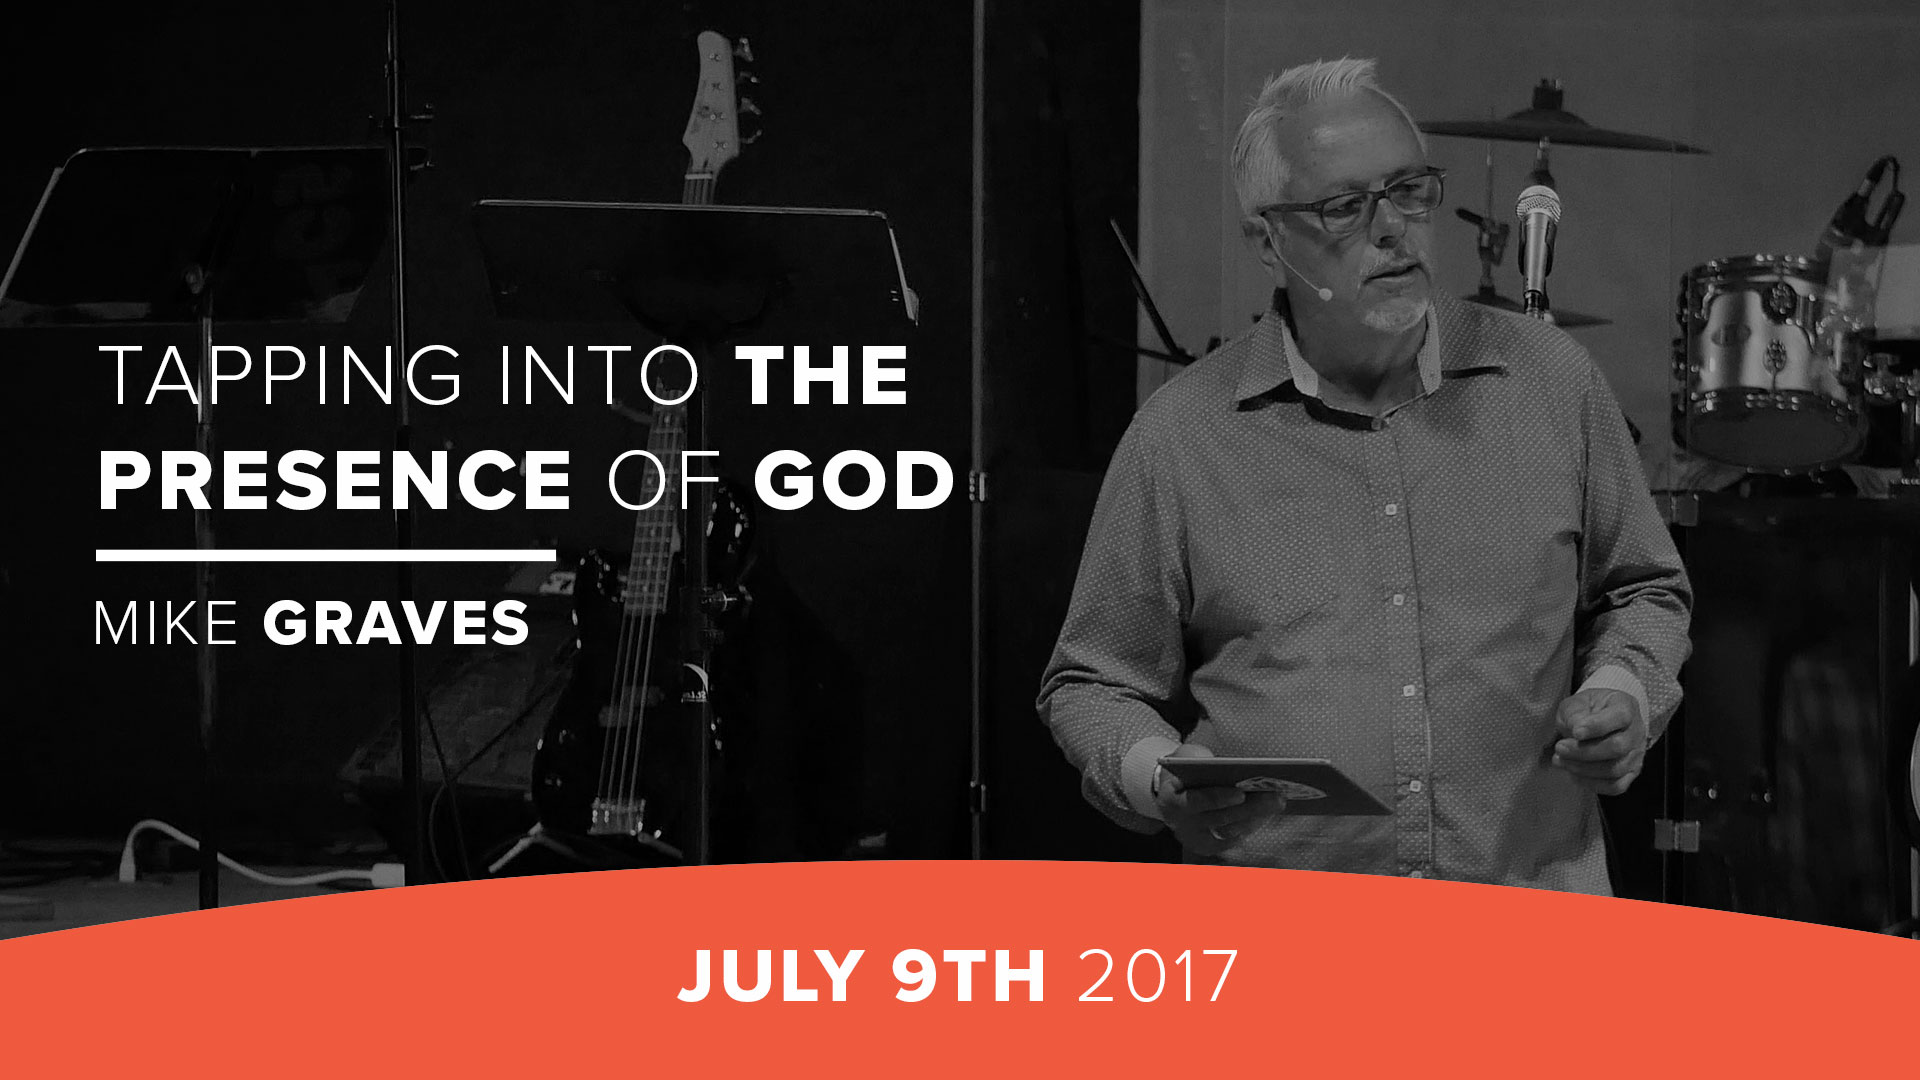 Tapping into the presence of God